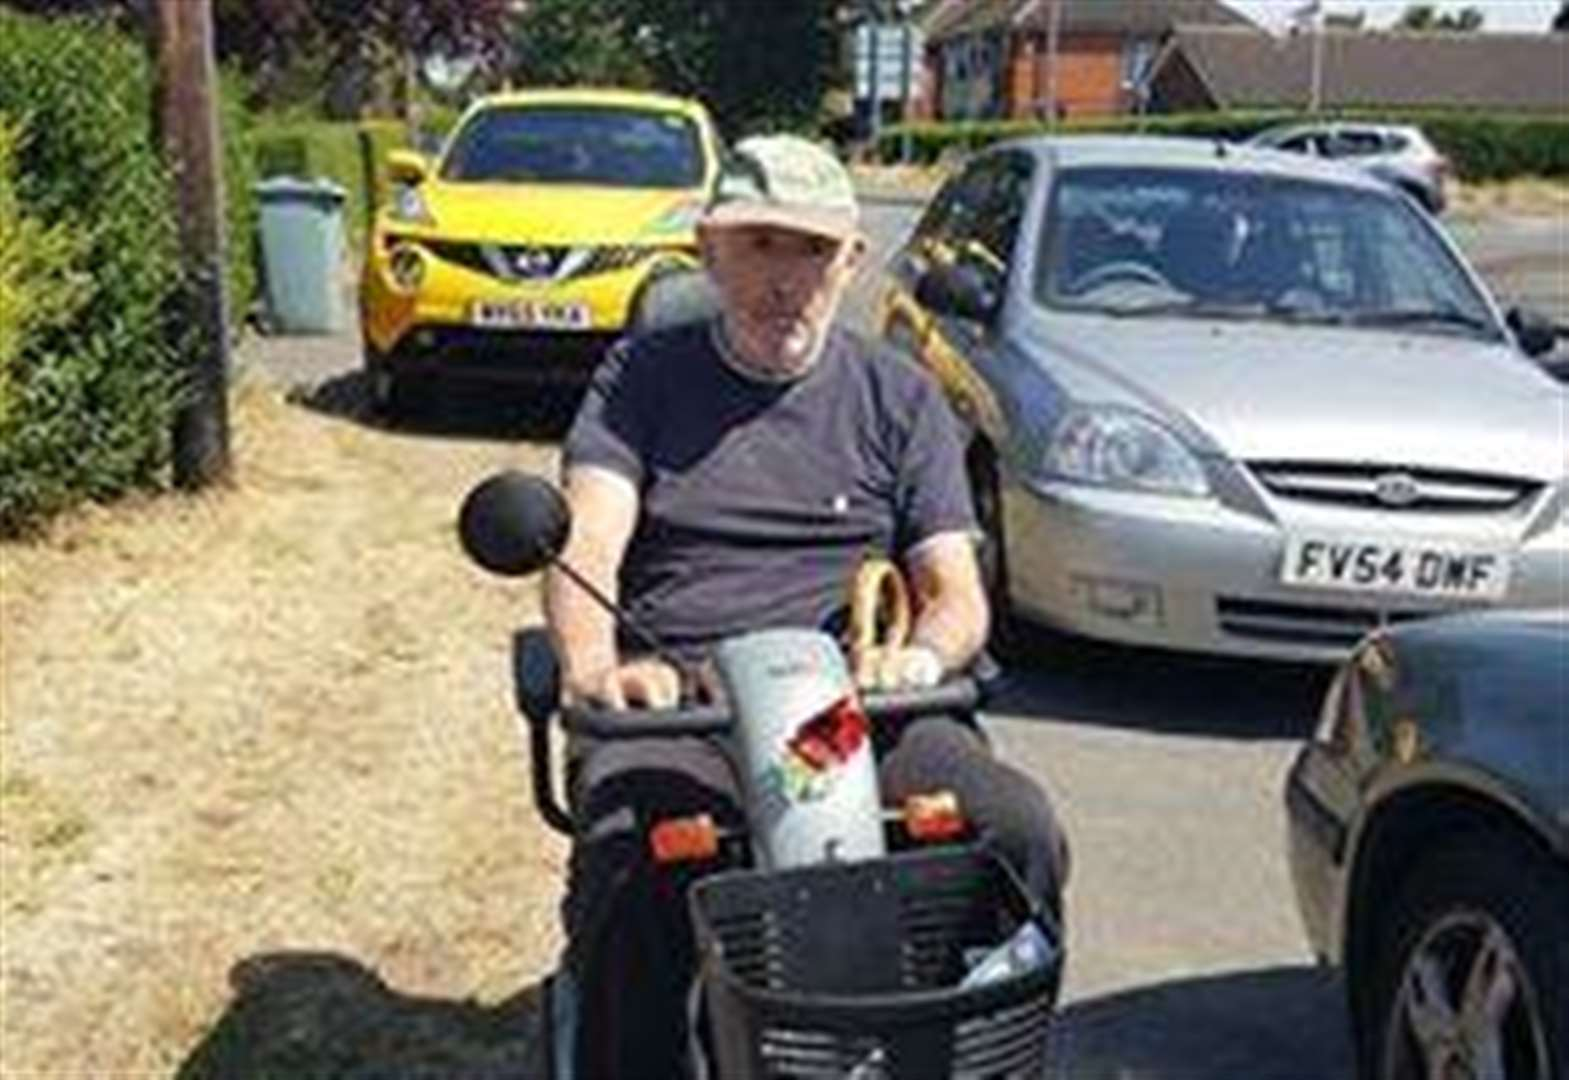 Mobility scooter user appeals for Grantham drivers to park with care